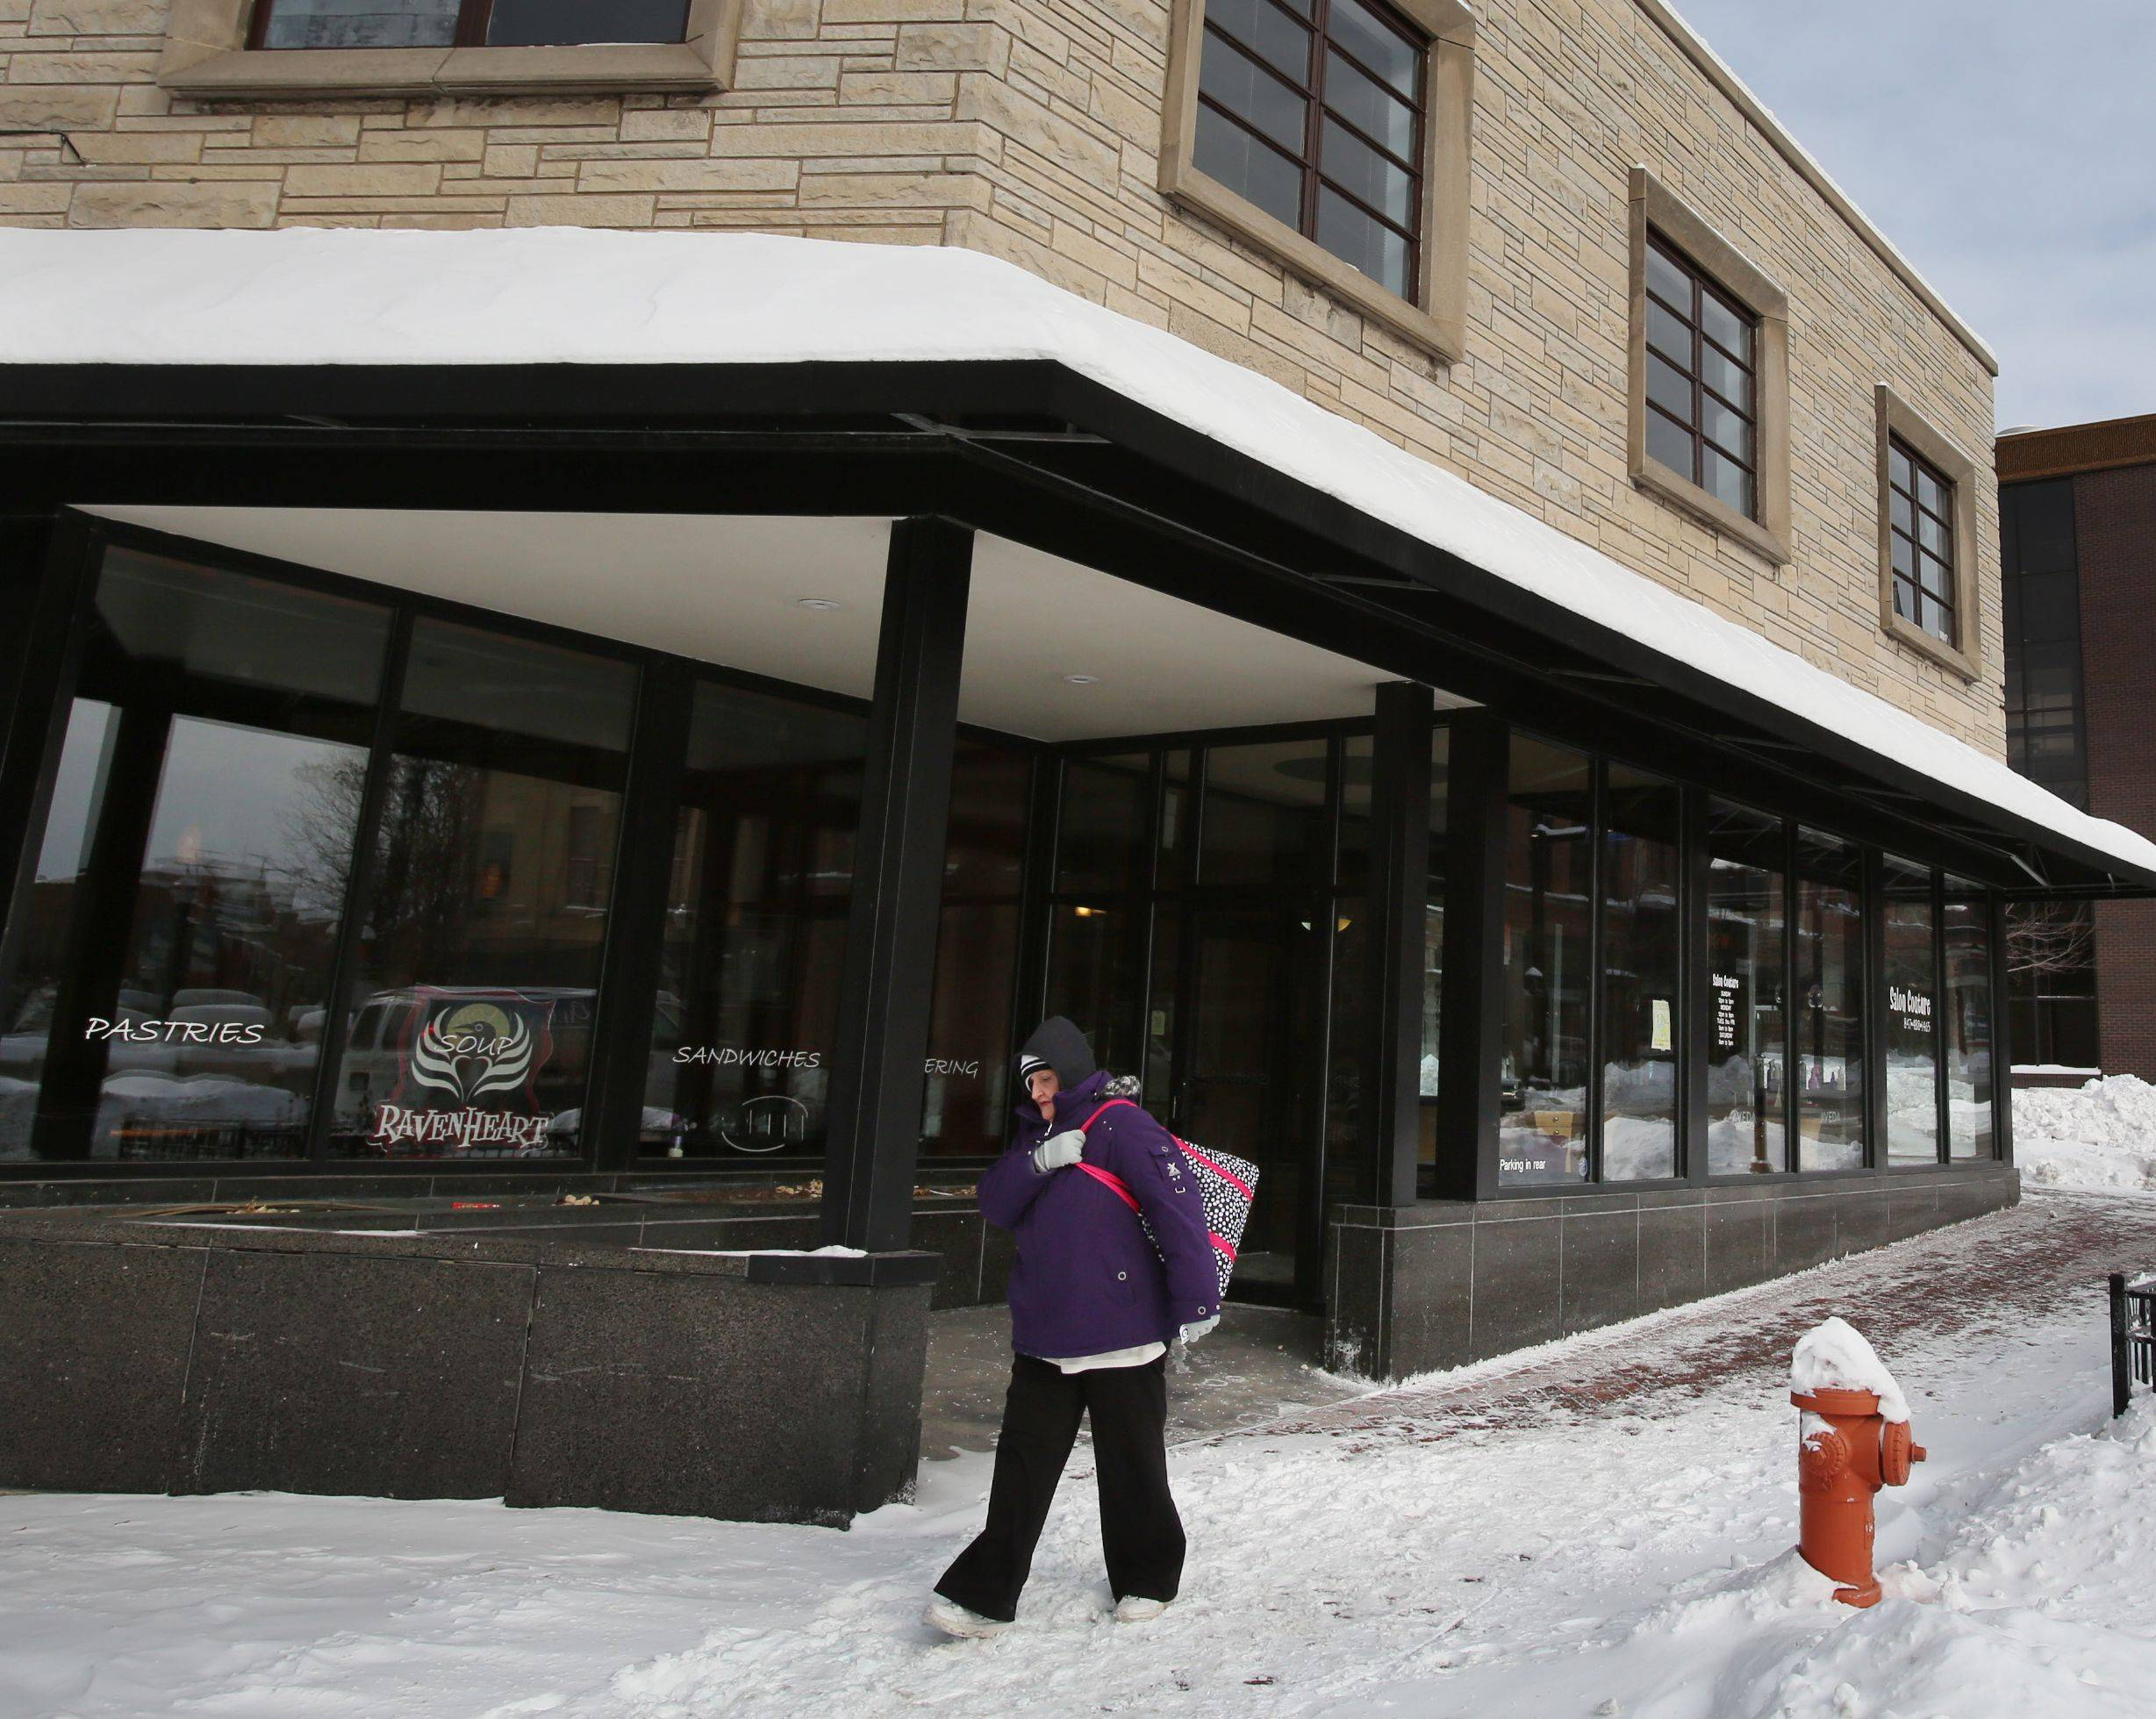 Ravenheart Coffee closed its doors late in 2013 on East Chicago Street in downtown Elgin.